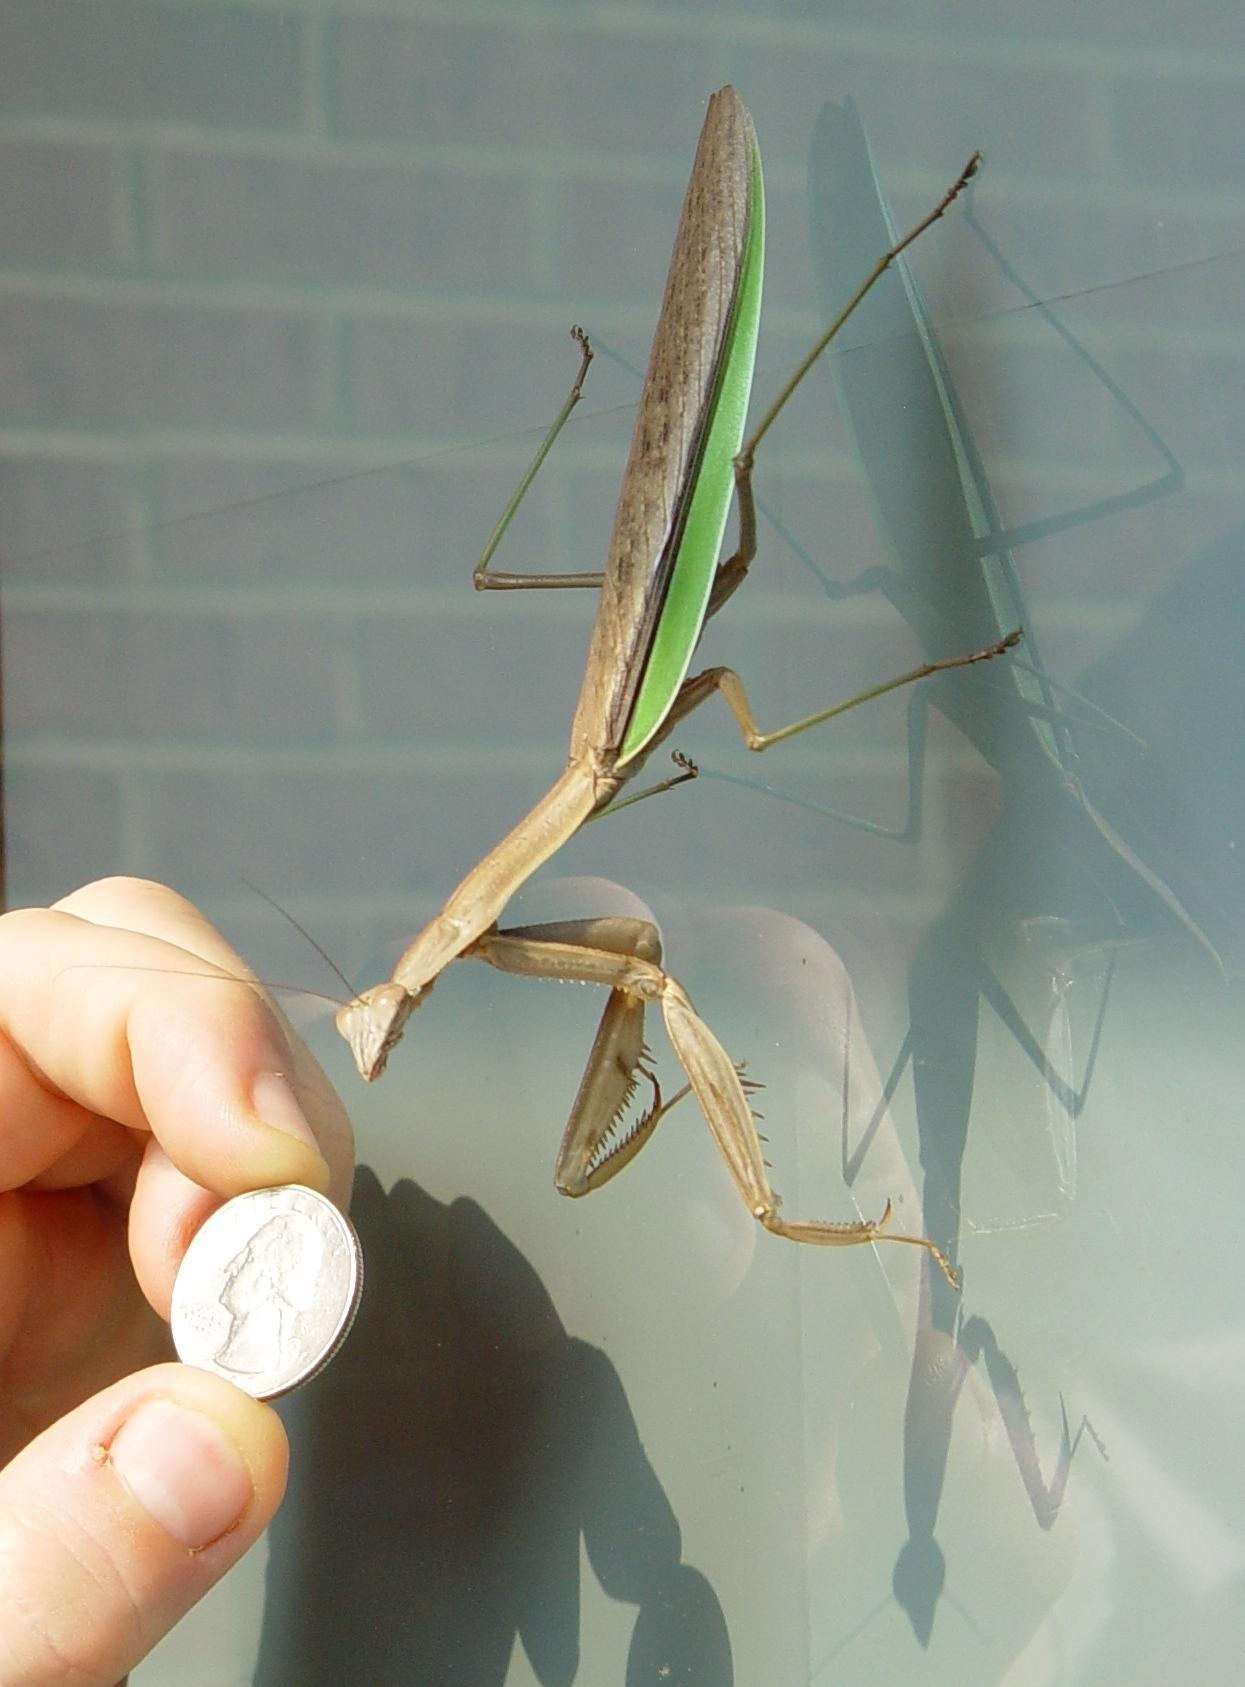 File:NG-PrayingMantis.jpg - Wikipedia